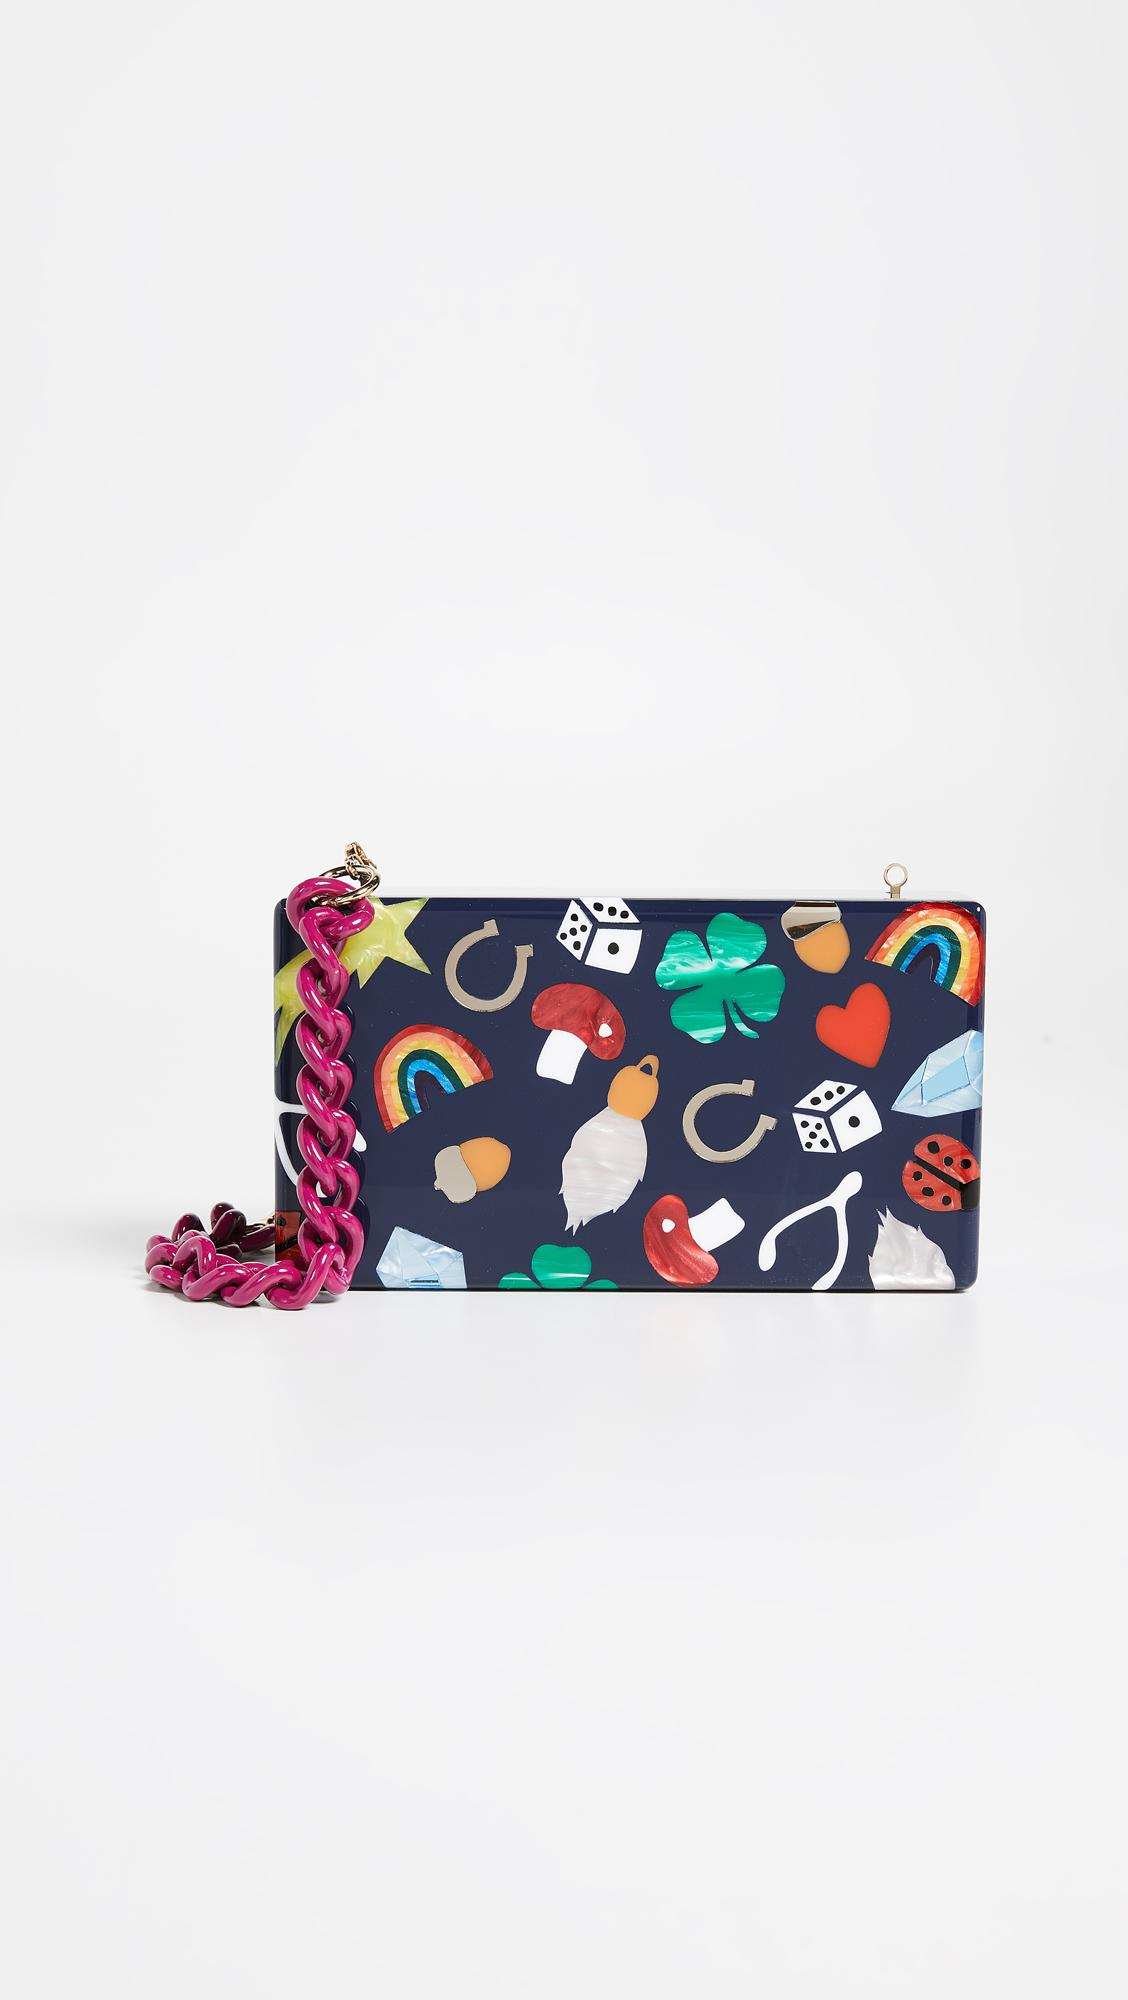 Edie Parker Lucky Charms Jean Clutch 4i3TxY